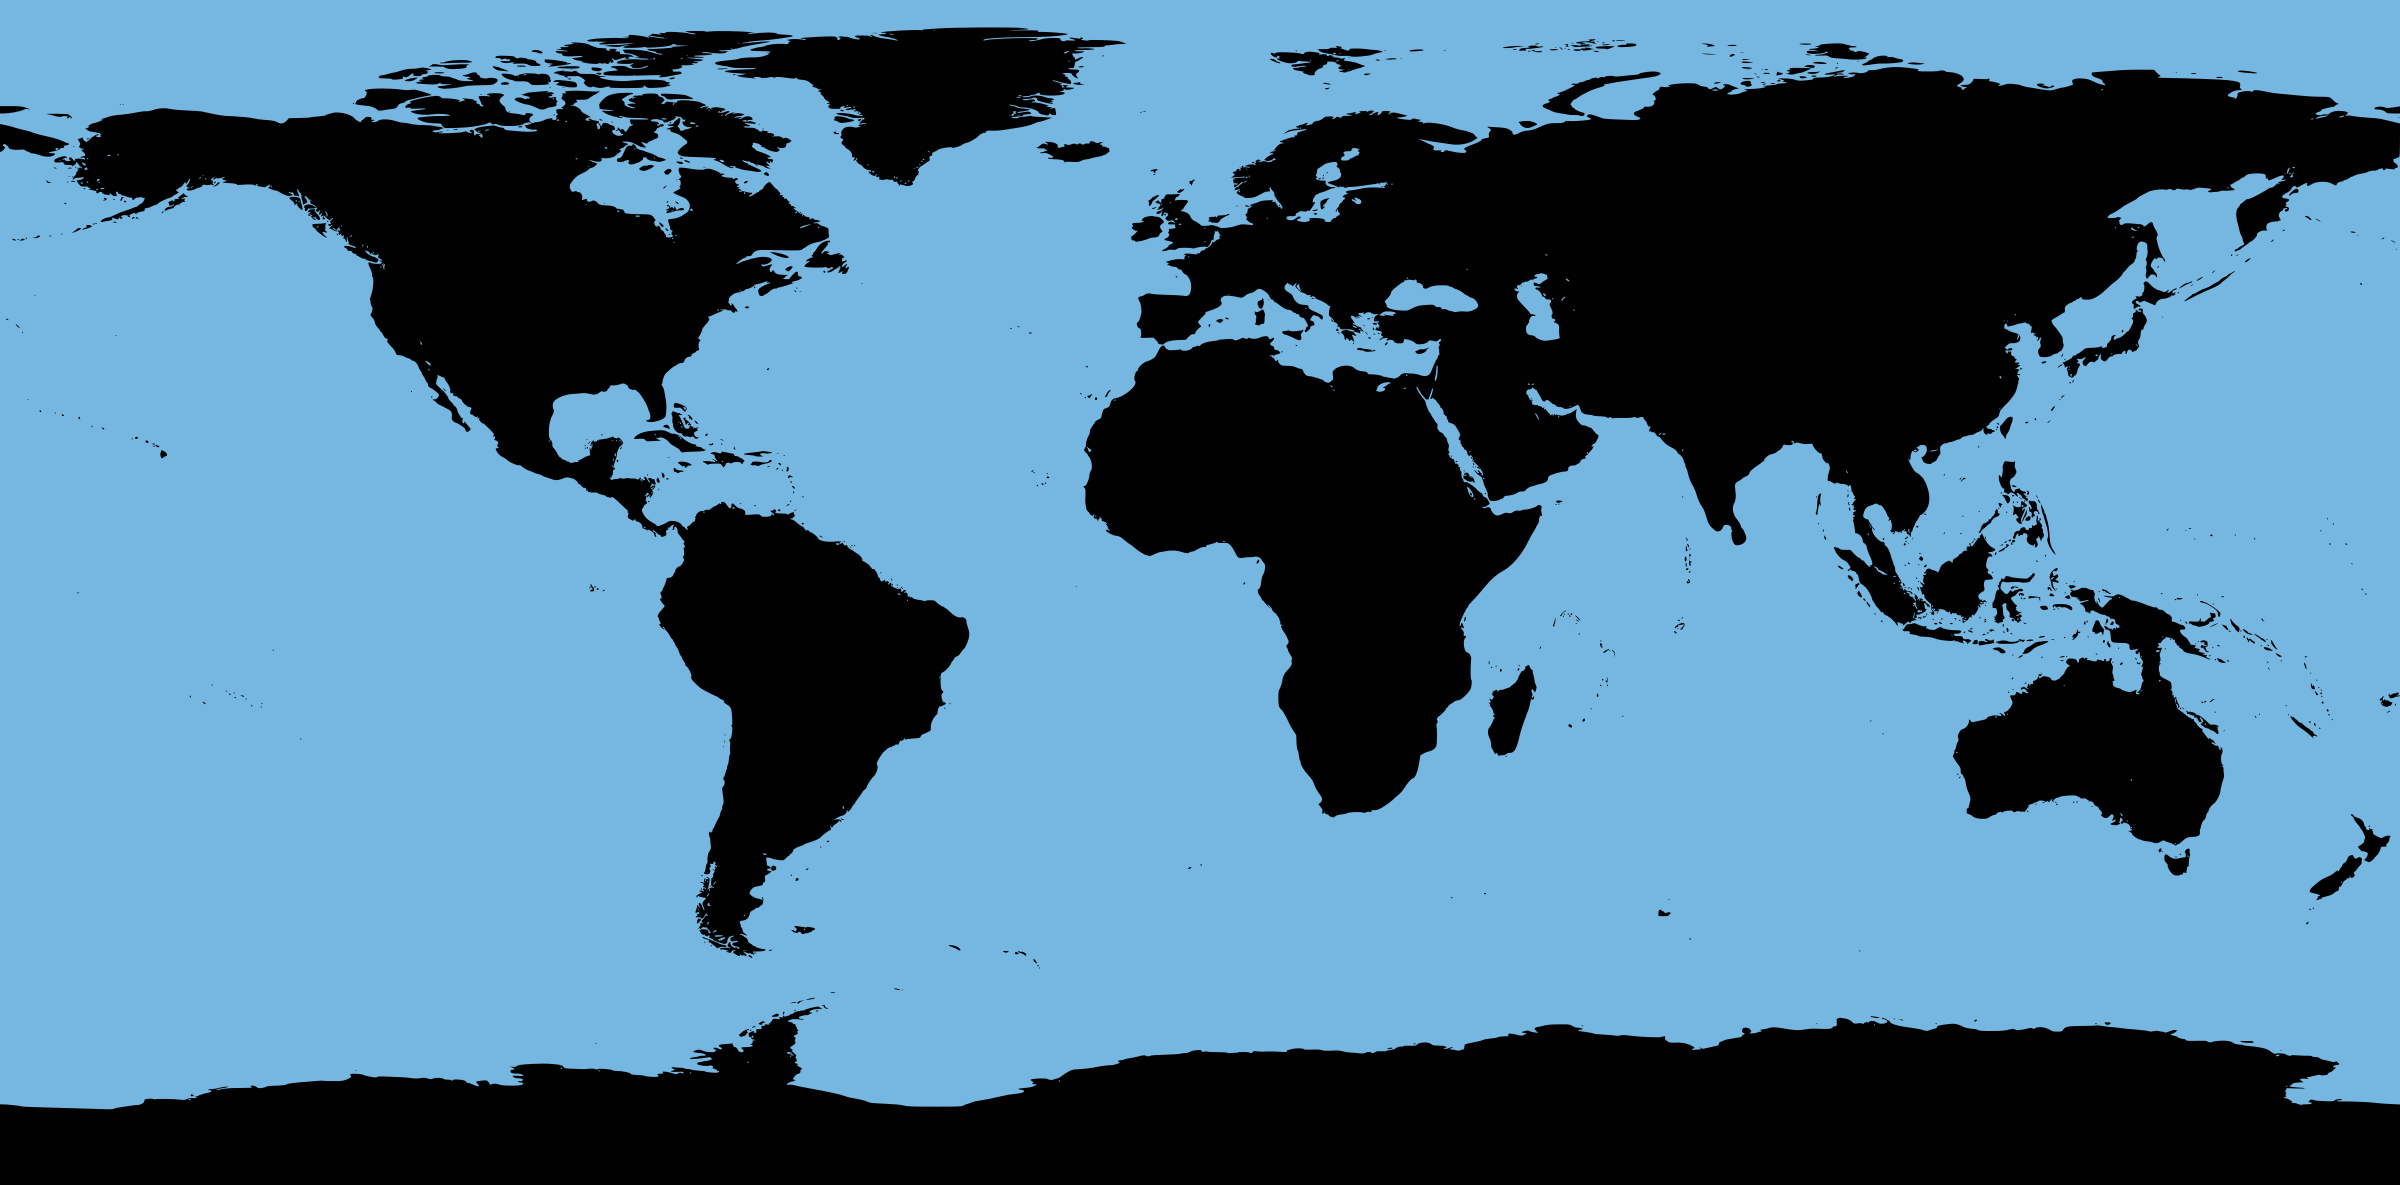 Bathymetry Map - Outline by j4p4n